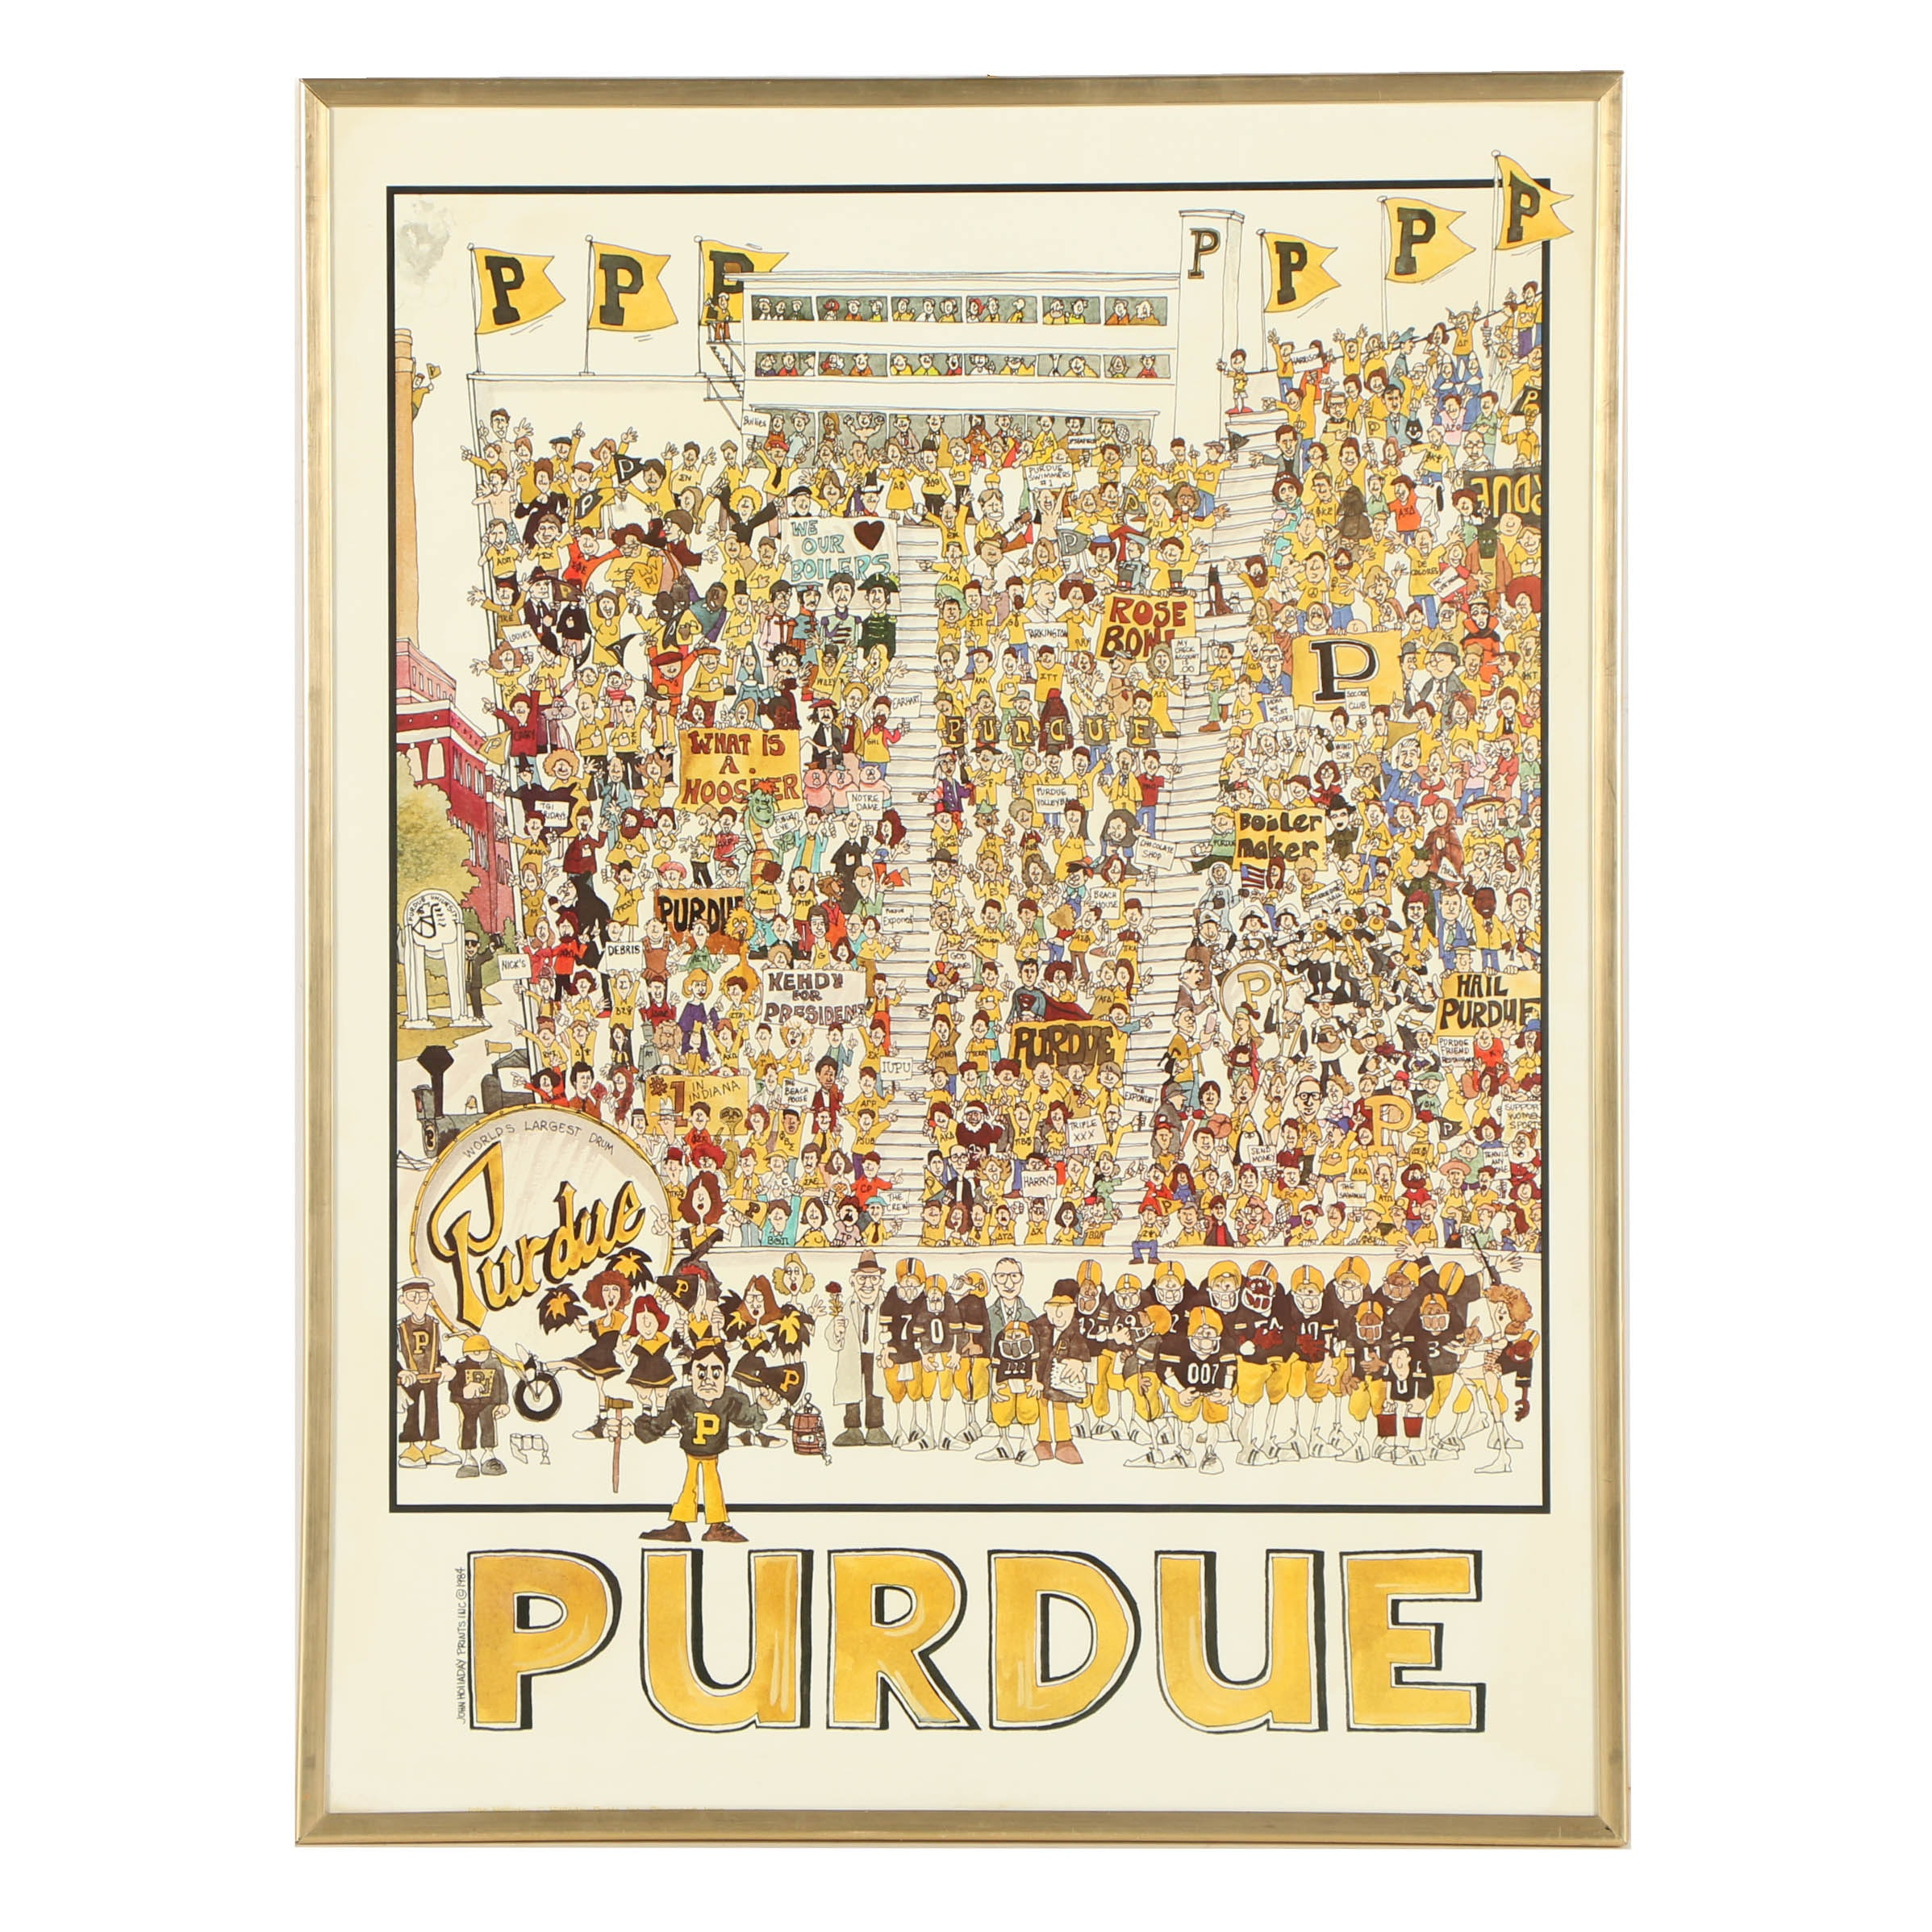 Purdue University Football Poster After John Holladay